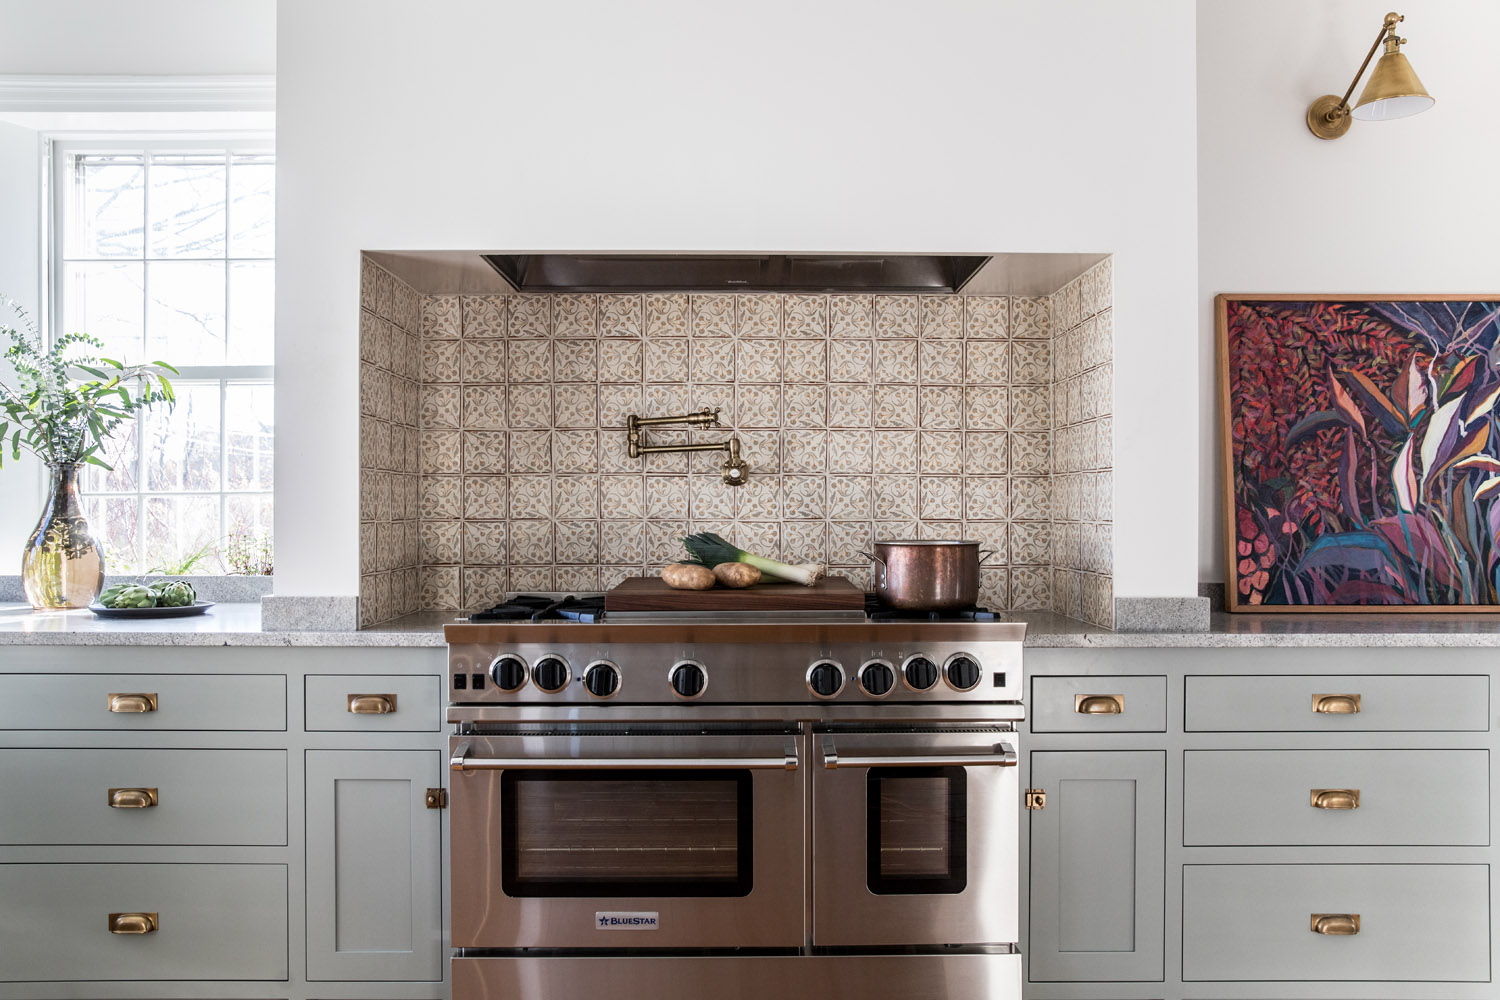 Design by Block Brothers Cabinets via  Rue Magazine